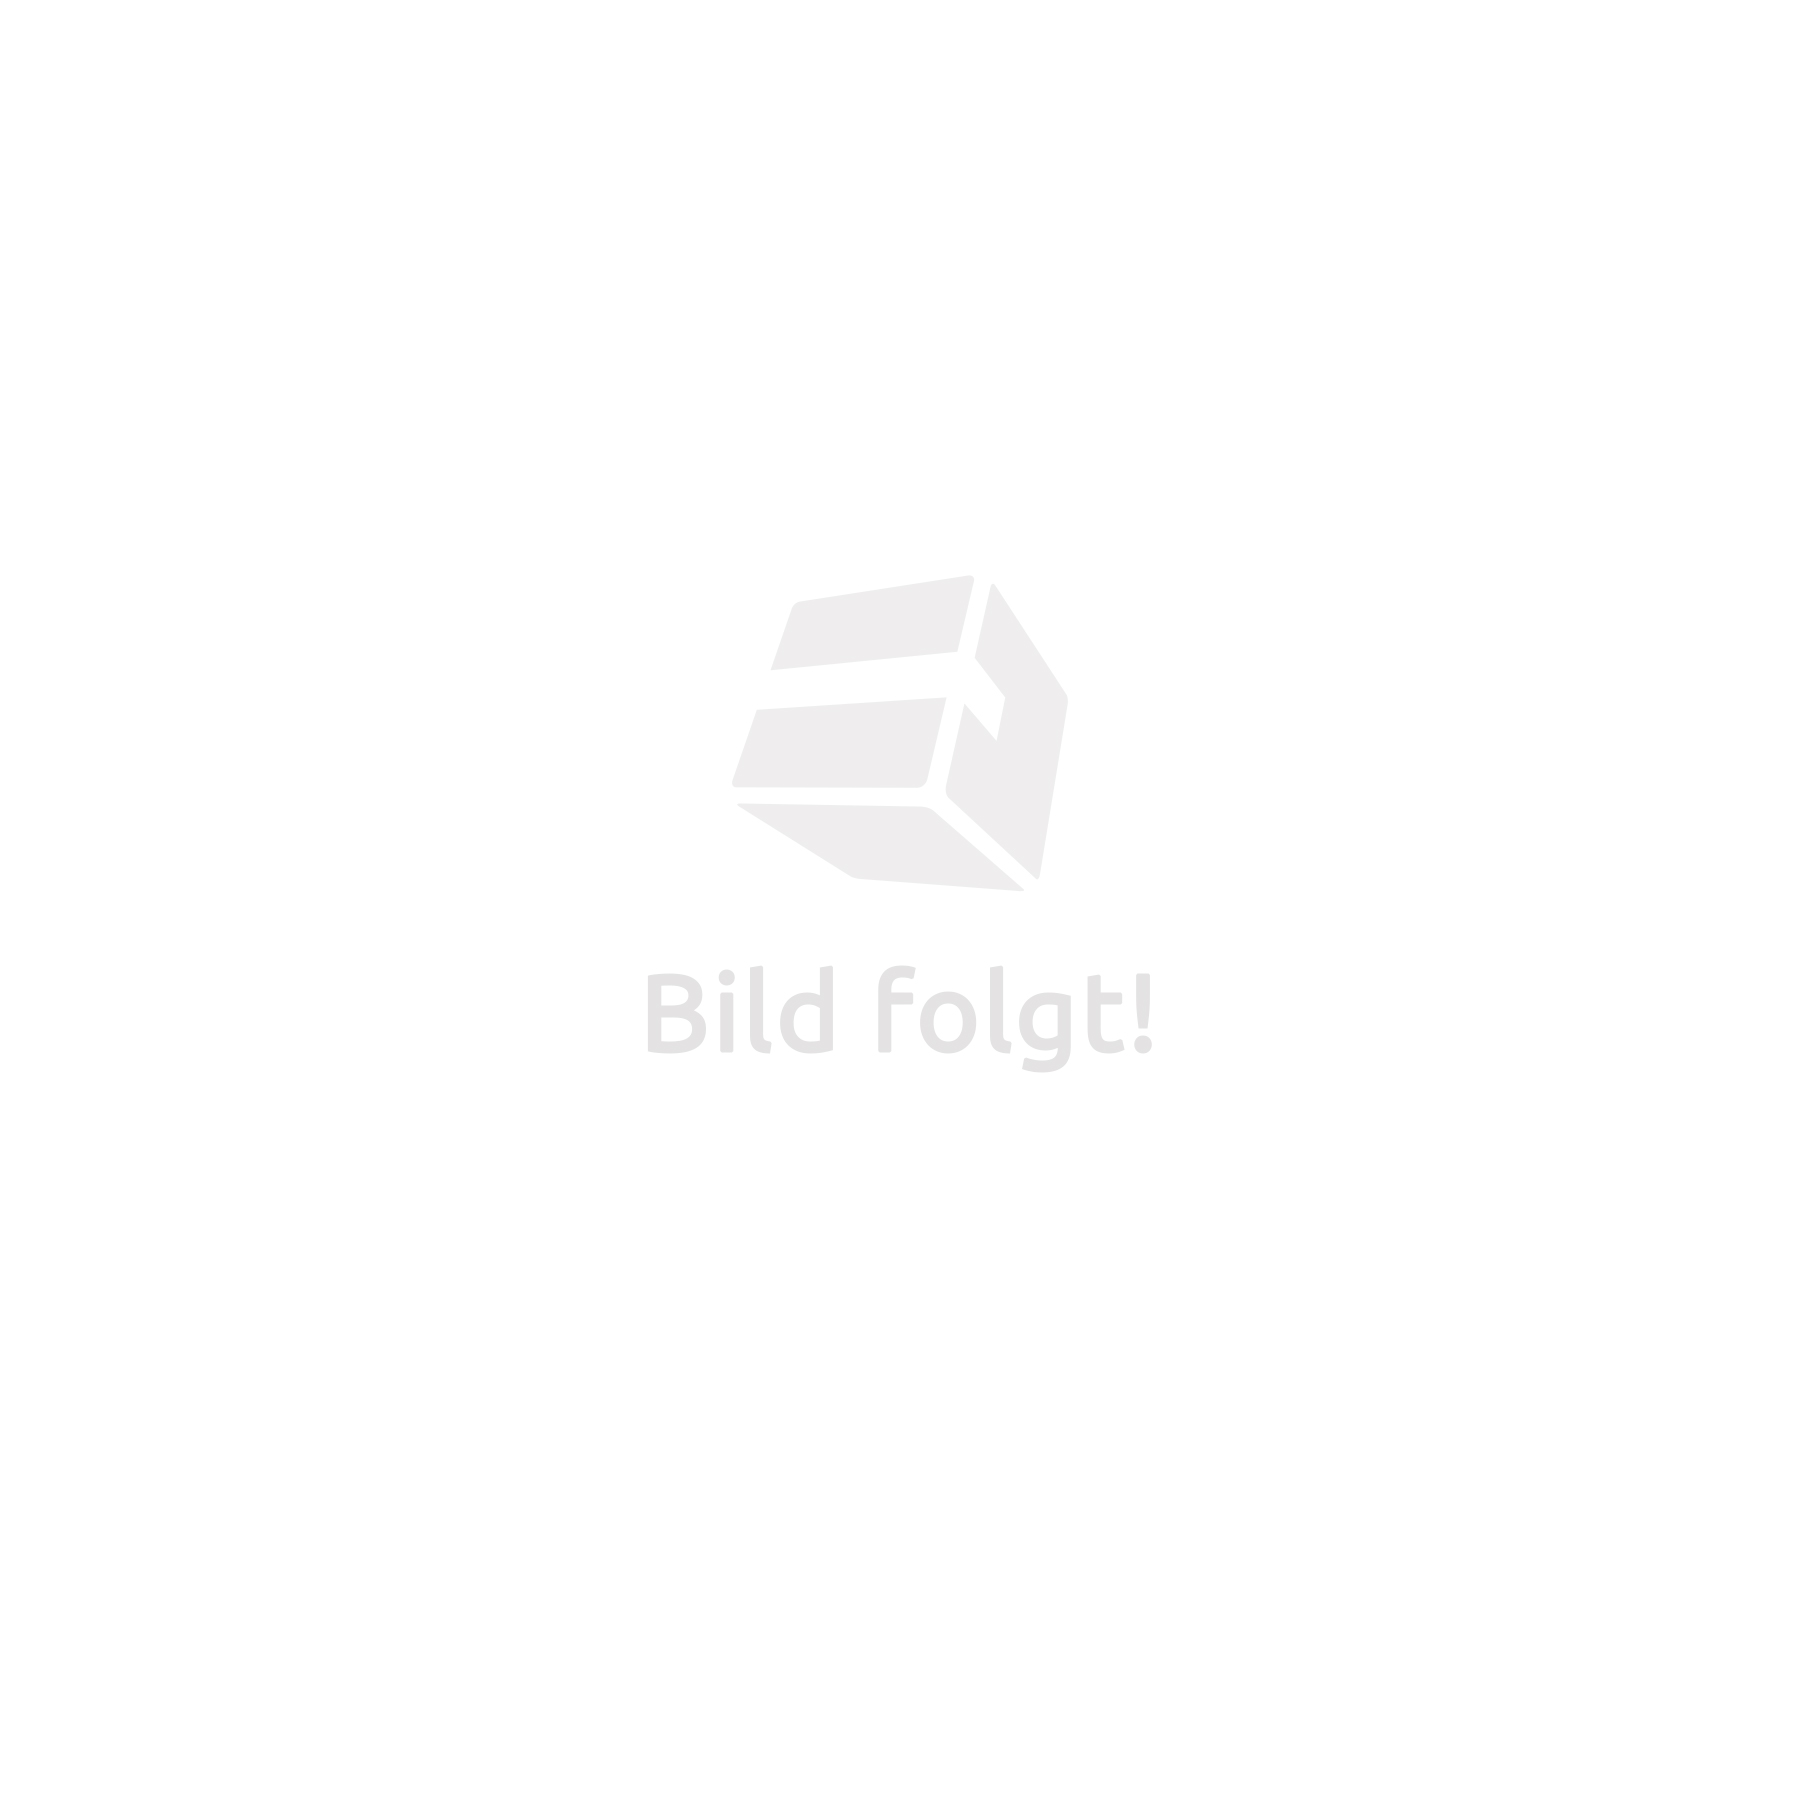 Wooden garden bench eucalyptus wood seat with metal legs for Antorchas para jardin caseras